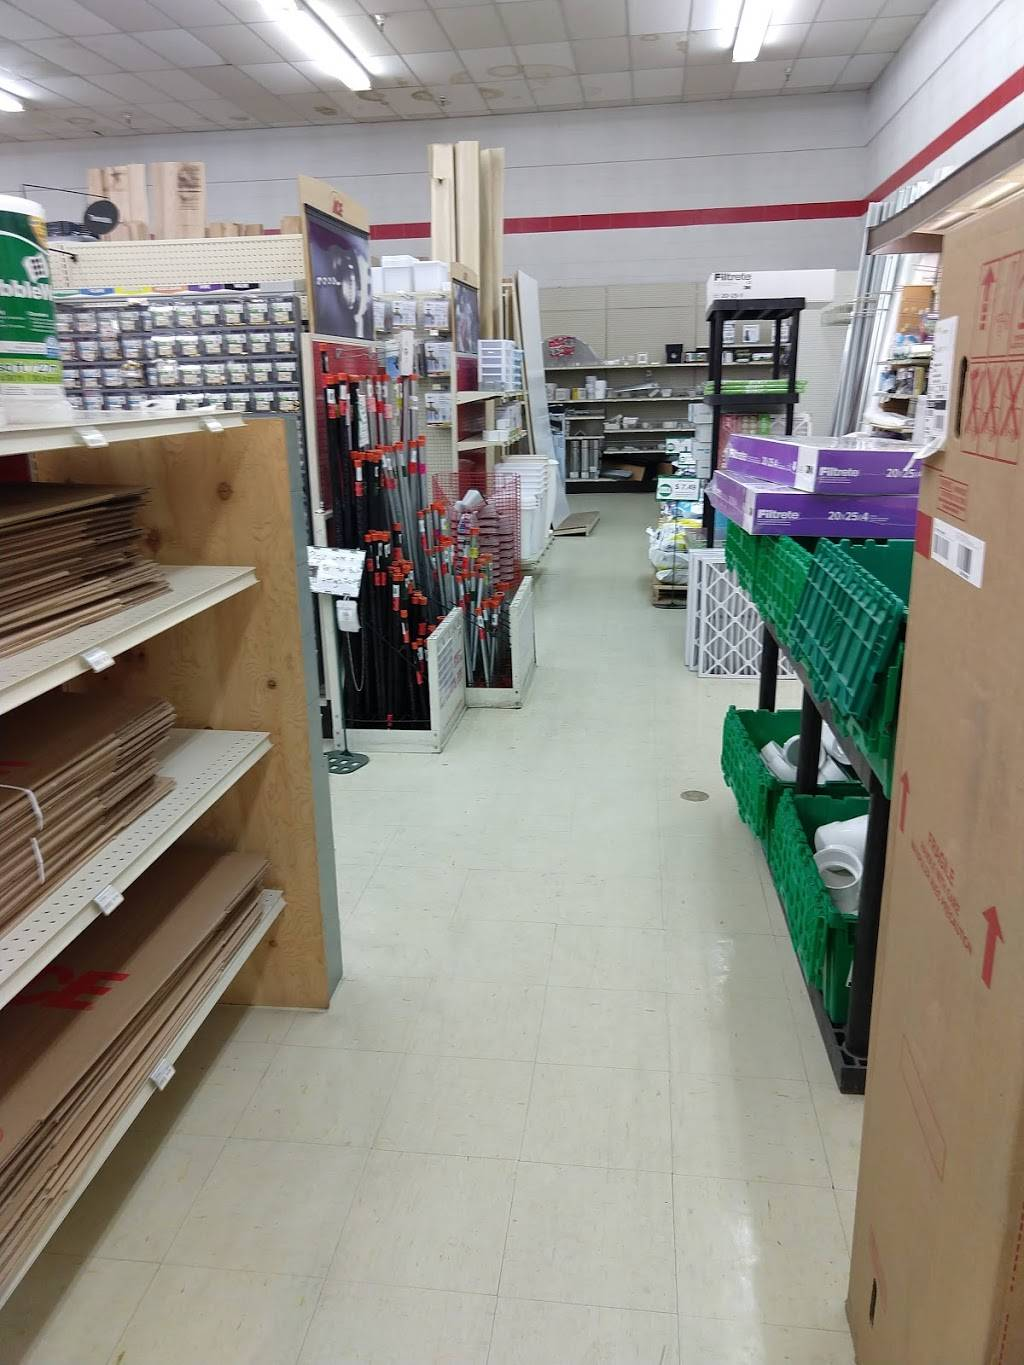 Thriftway Home Center & Ace Hardware - hardware store  | Photo 4 of 5 | Address: 4705 W State St, Boise, ID 83703, USA | Phone: (208) 342-1668